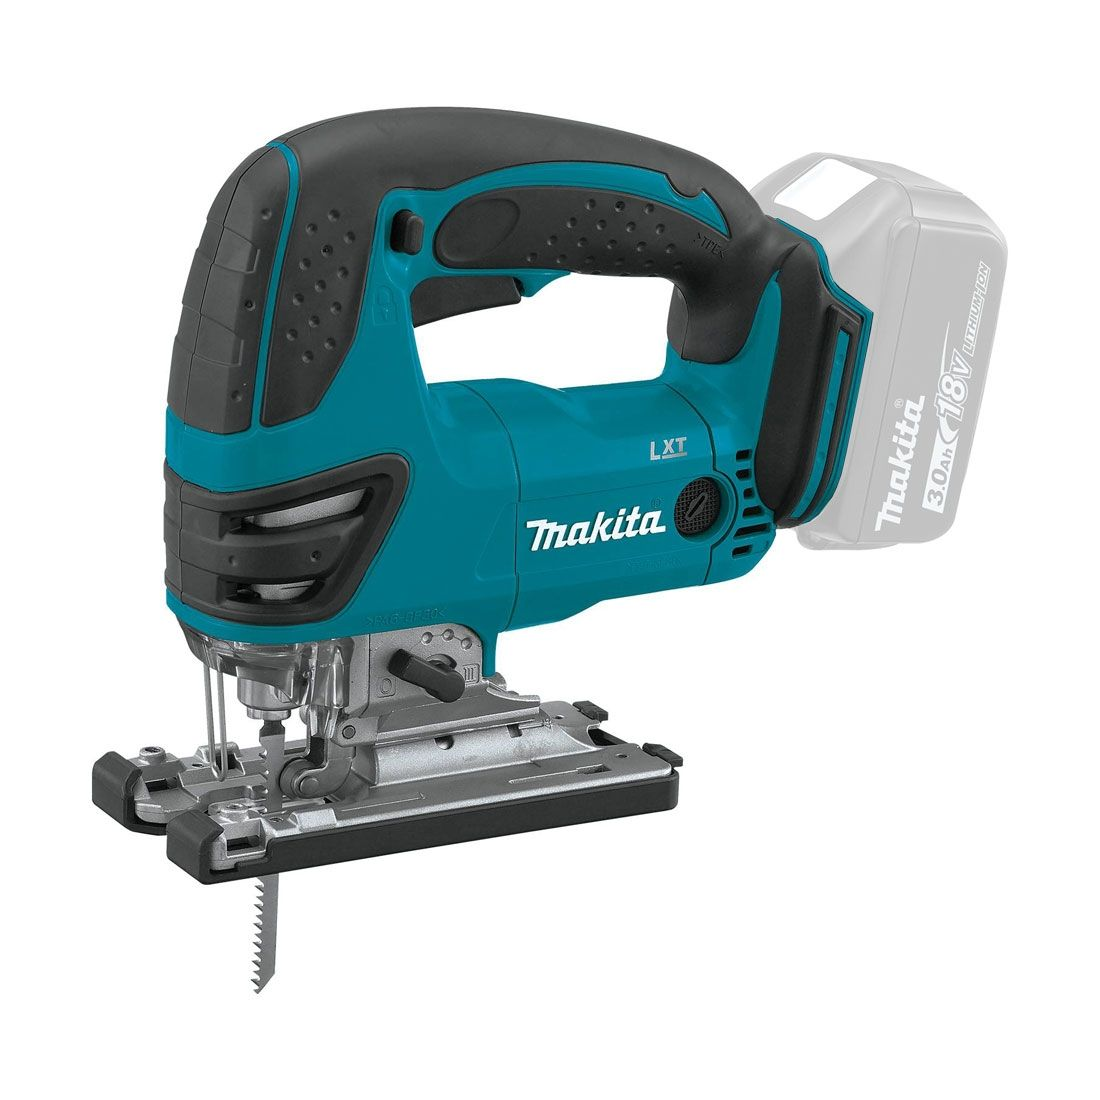 Makita 18v Jigsaw (Body Only) MAKDJV180Z   The Makita DJV180Z is a compact and lightweight jigsaw powered by Makita lithium-ion batteries.   toolforce.ie